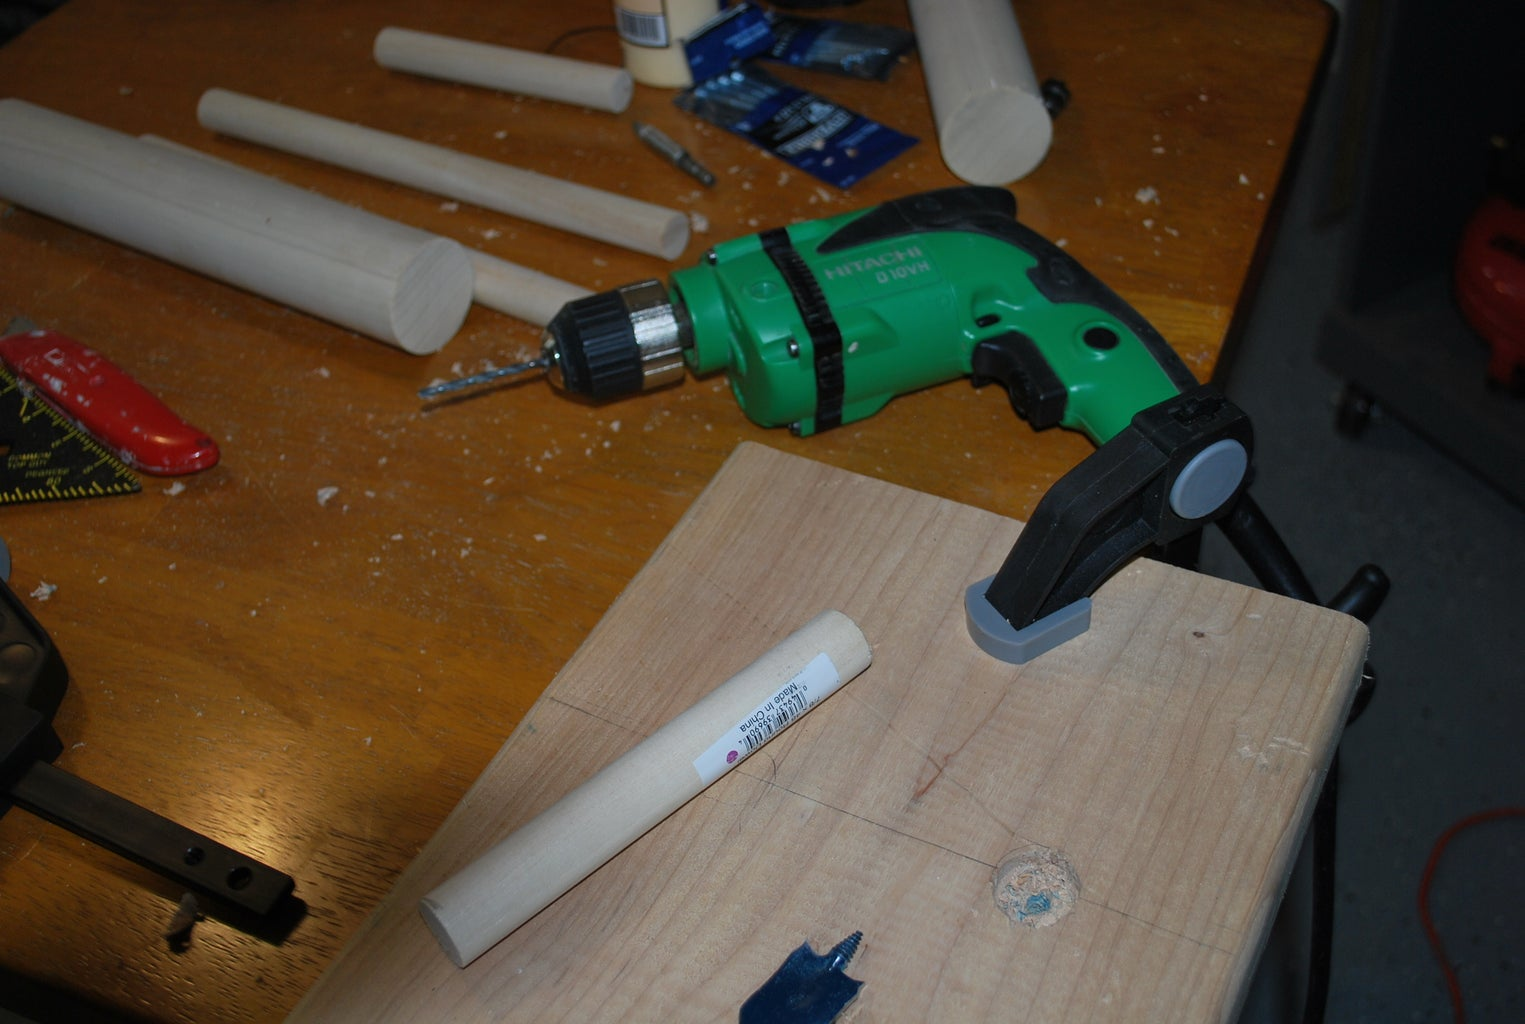 Drilling Partial Holes for the Dowels